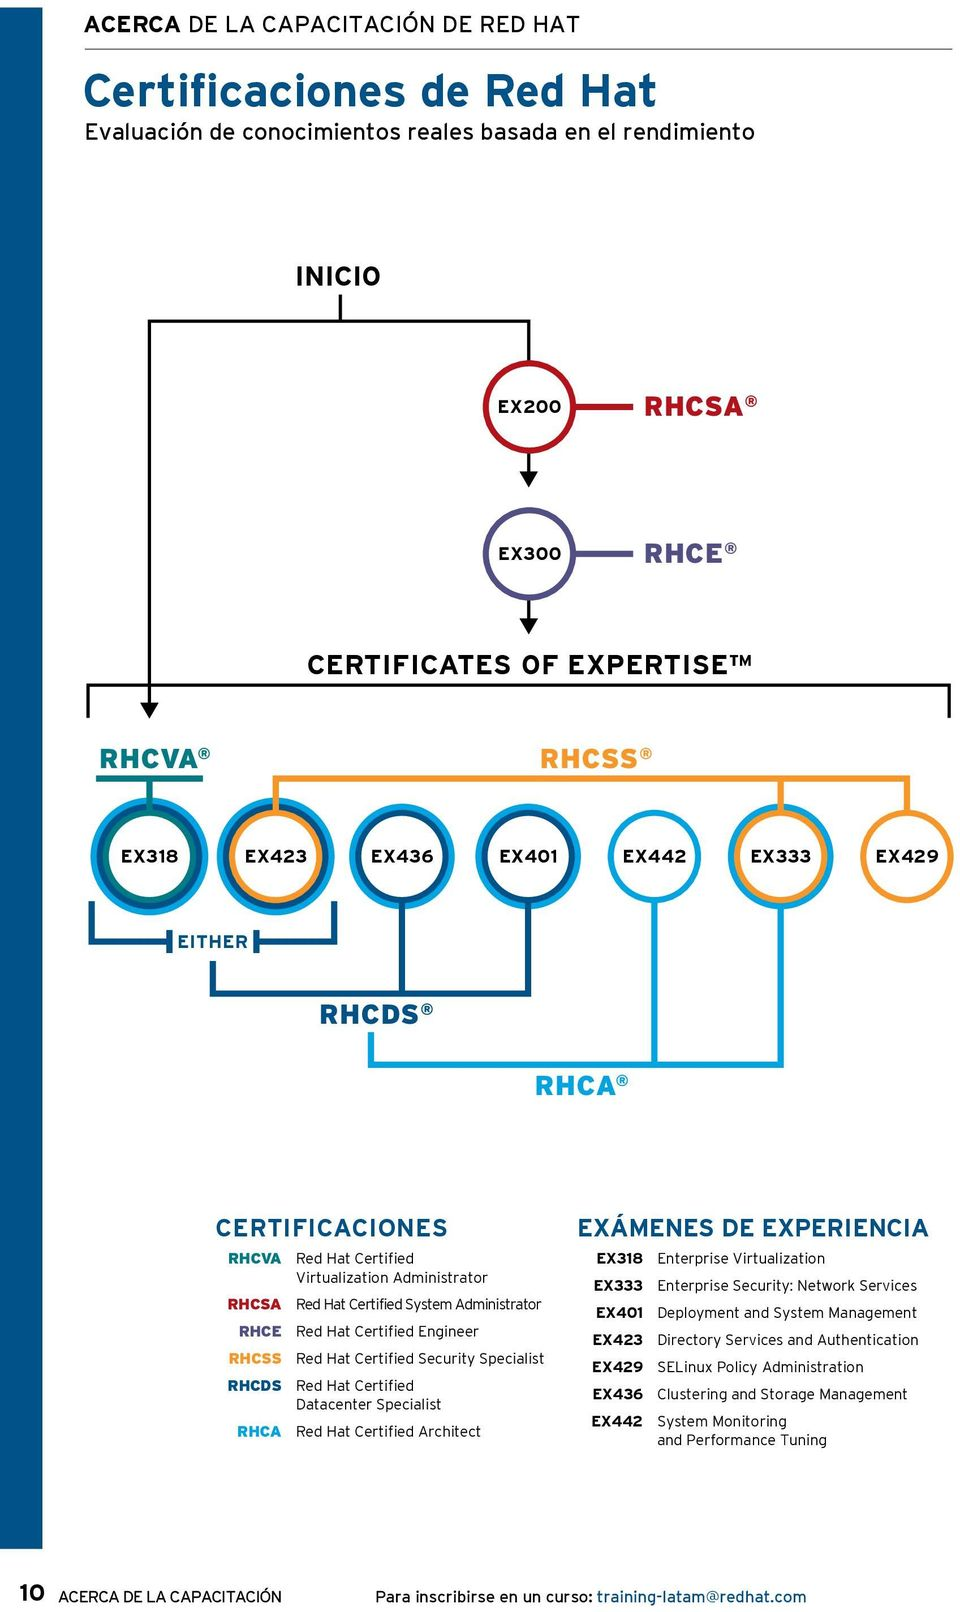 RHCSS Red Hat Certified Security Specialist RHCDS Red Hat Certified Datacenter Specialist RHCA Red Hat Certified Architect EXÁMENES DE EXPERIENCIA EX318 Enterprise Virtualization EX333 Enterprise